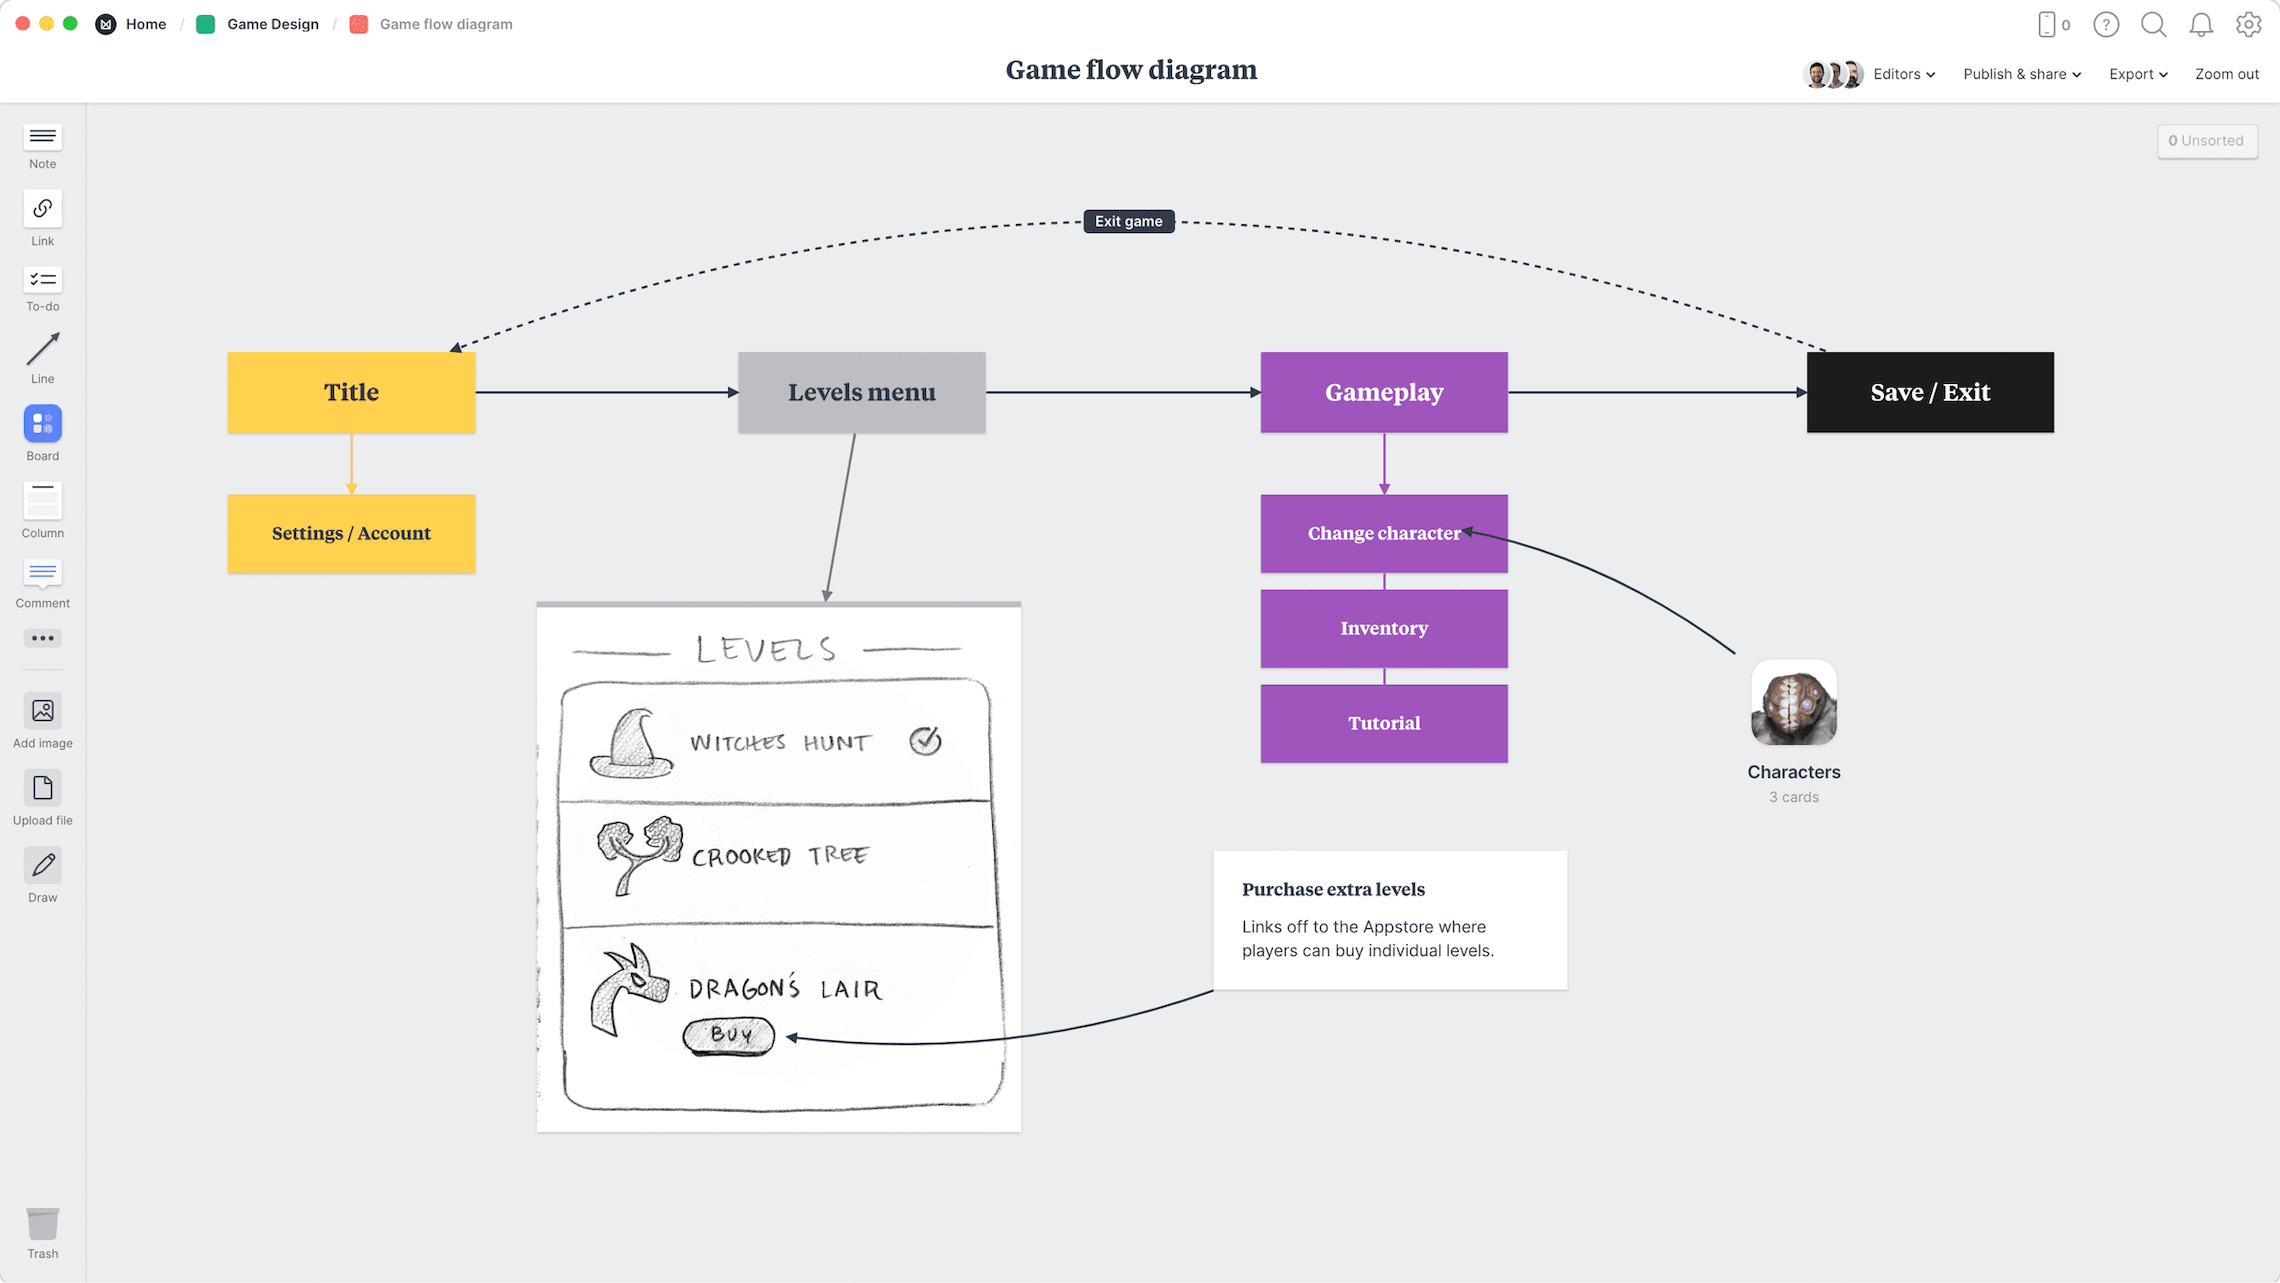 Game Flow Diagram Template, within the Milanote app